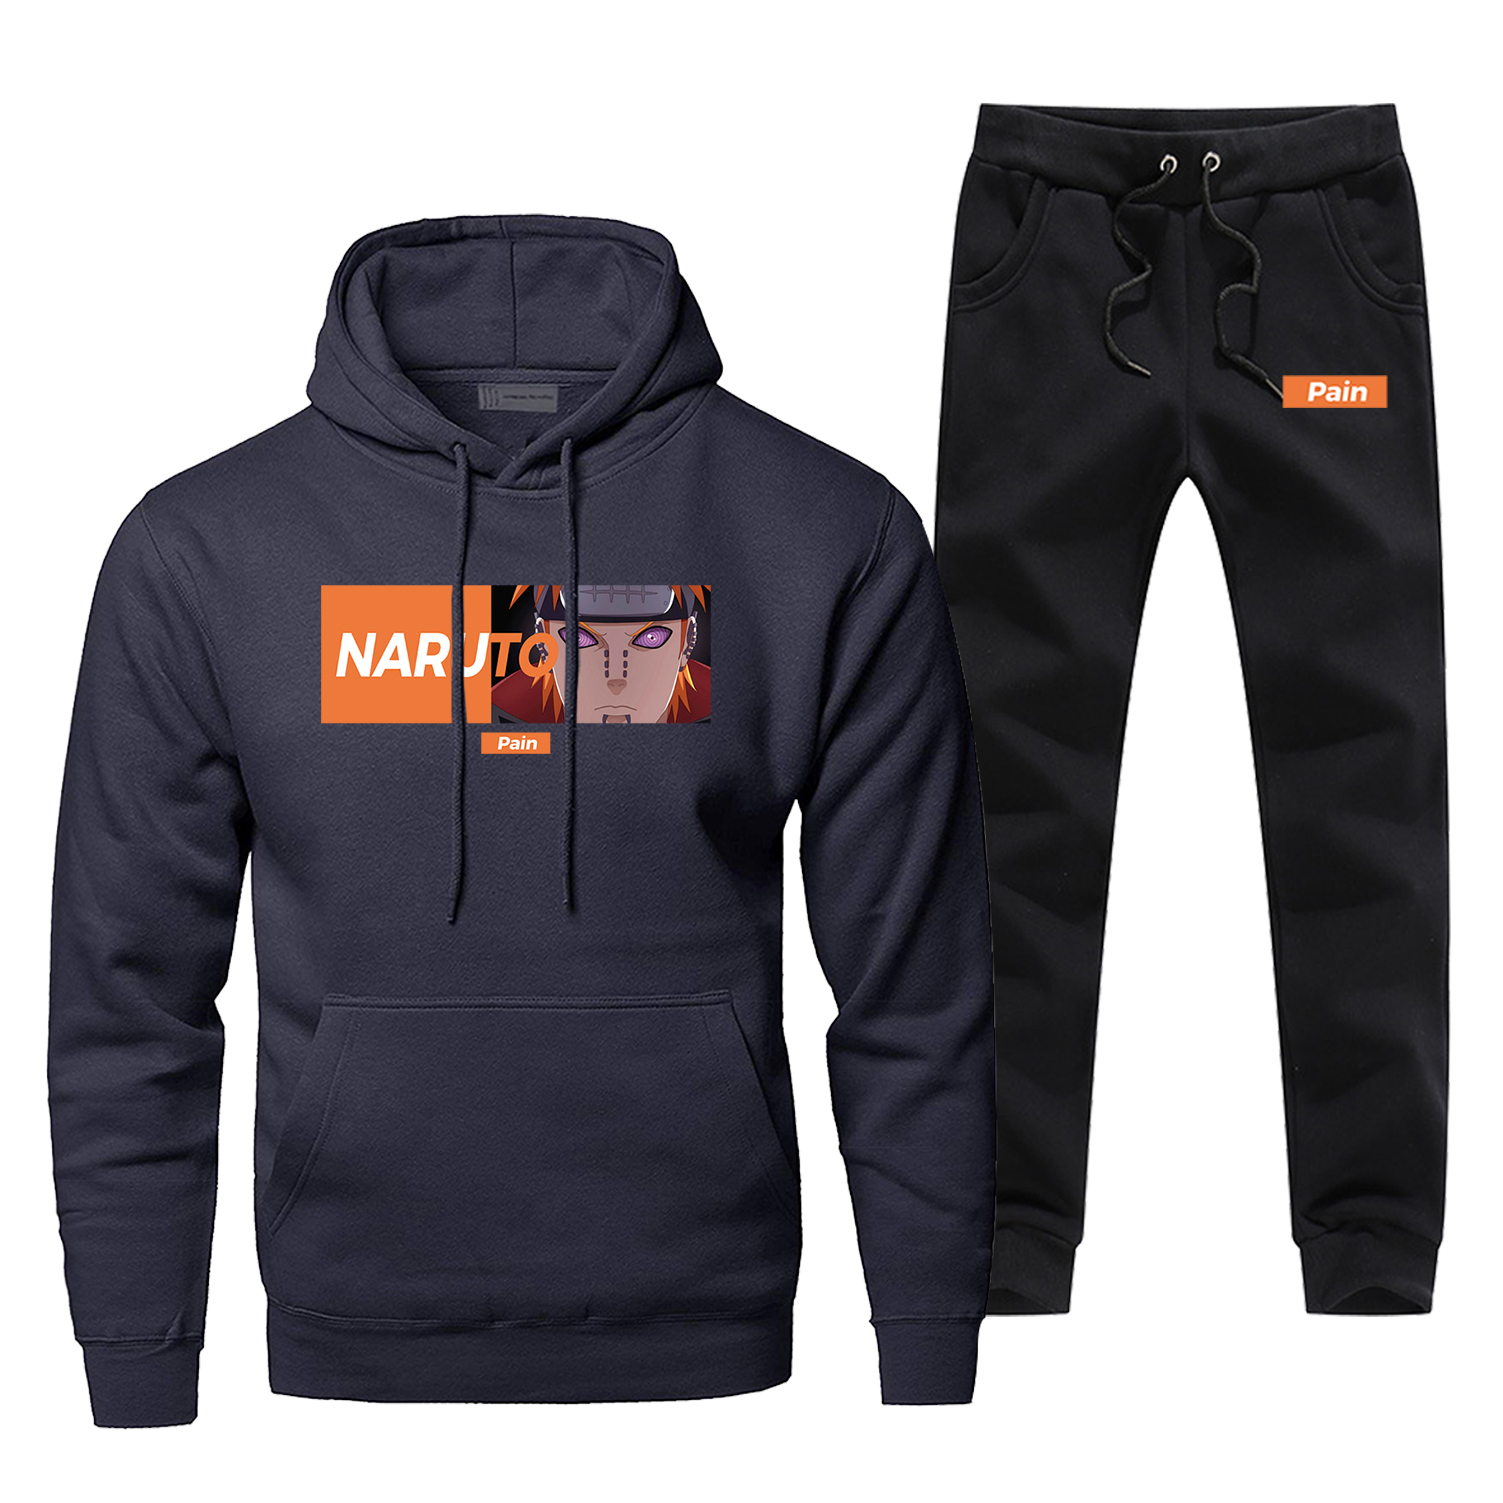 Hoodie Naruto Pants Set Men Sweatshirt Male Hoodies Sweatshirts Mens Japanese Anime Pain Sets Two Piece Pant Pullover Hoody Coat